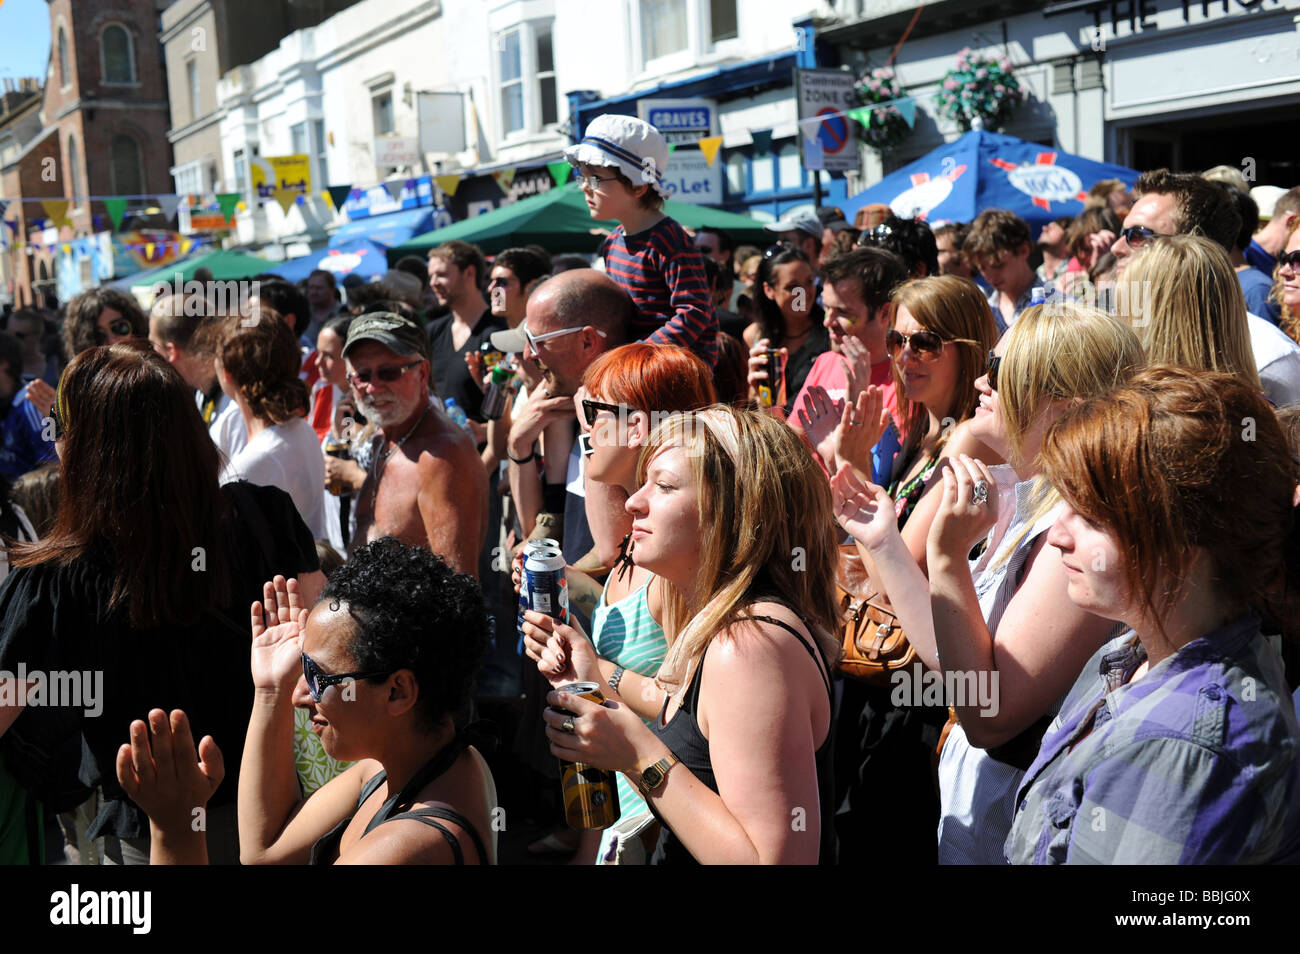 Crowds enjoy the bands performing and the hot weather at the Sunflower Street Party in Kemp town Brighton UK - Stock Image